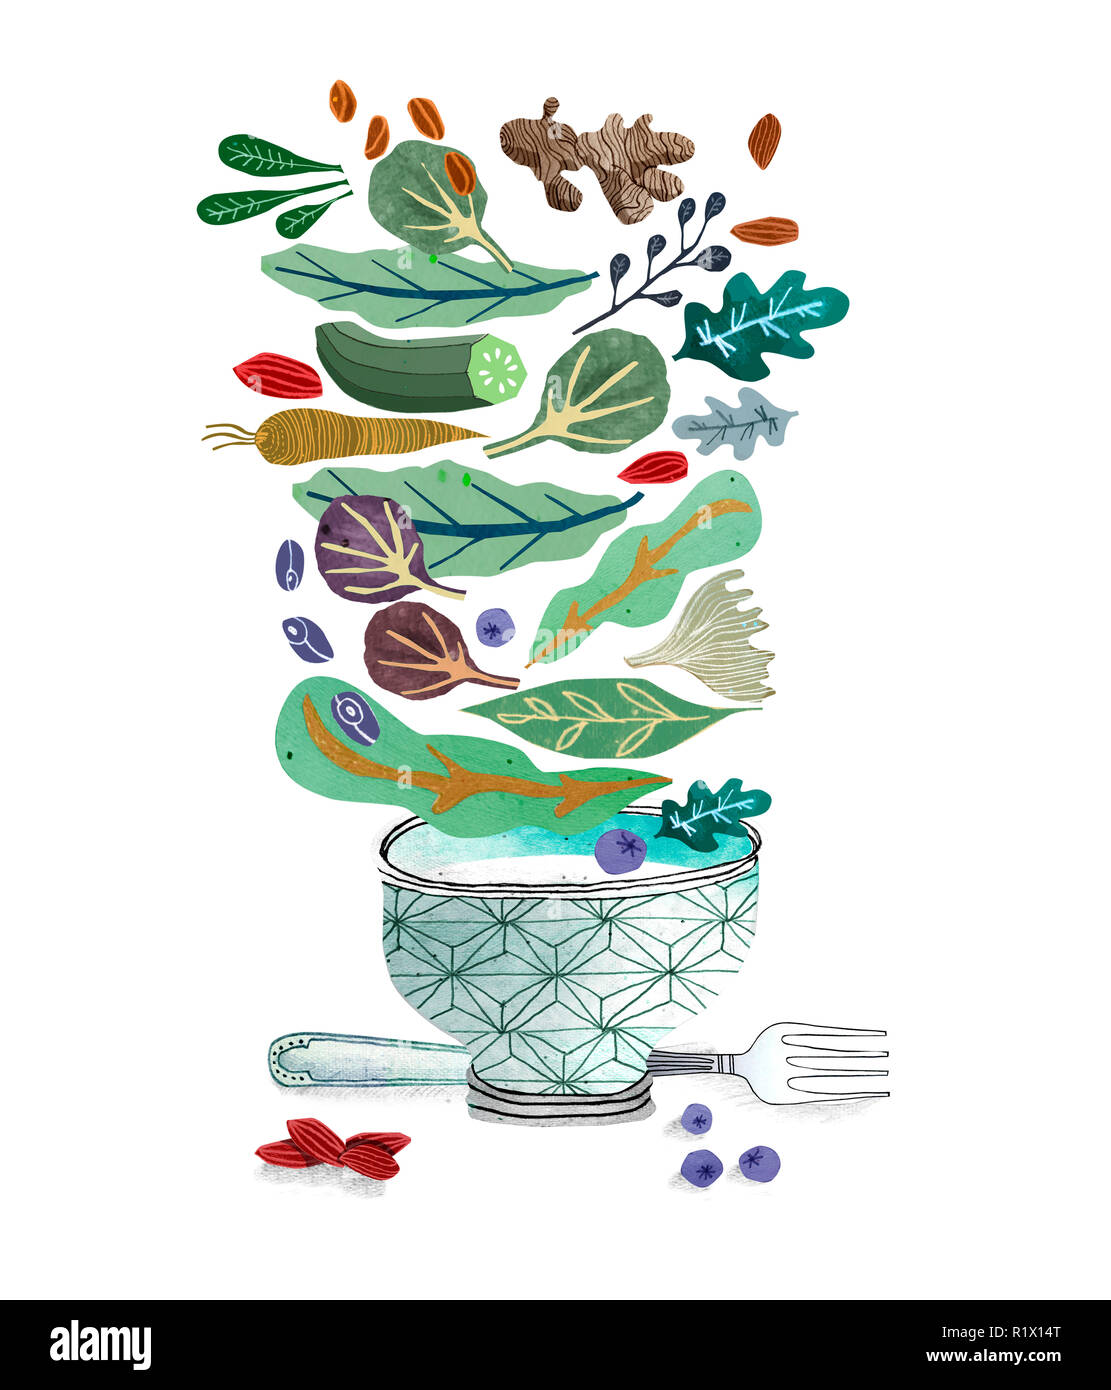 bowl and fork with salad - Stock Image